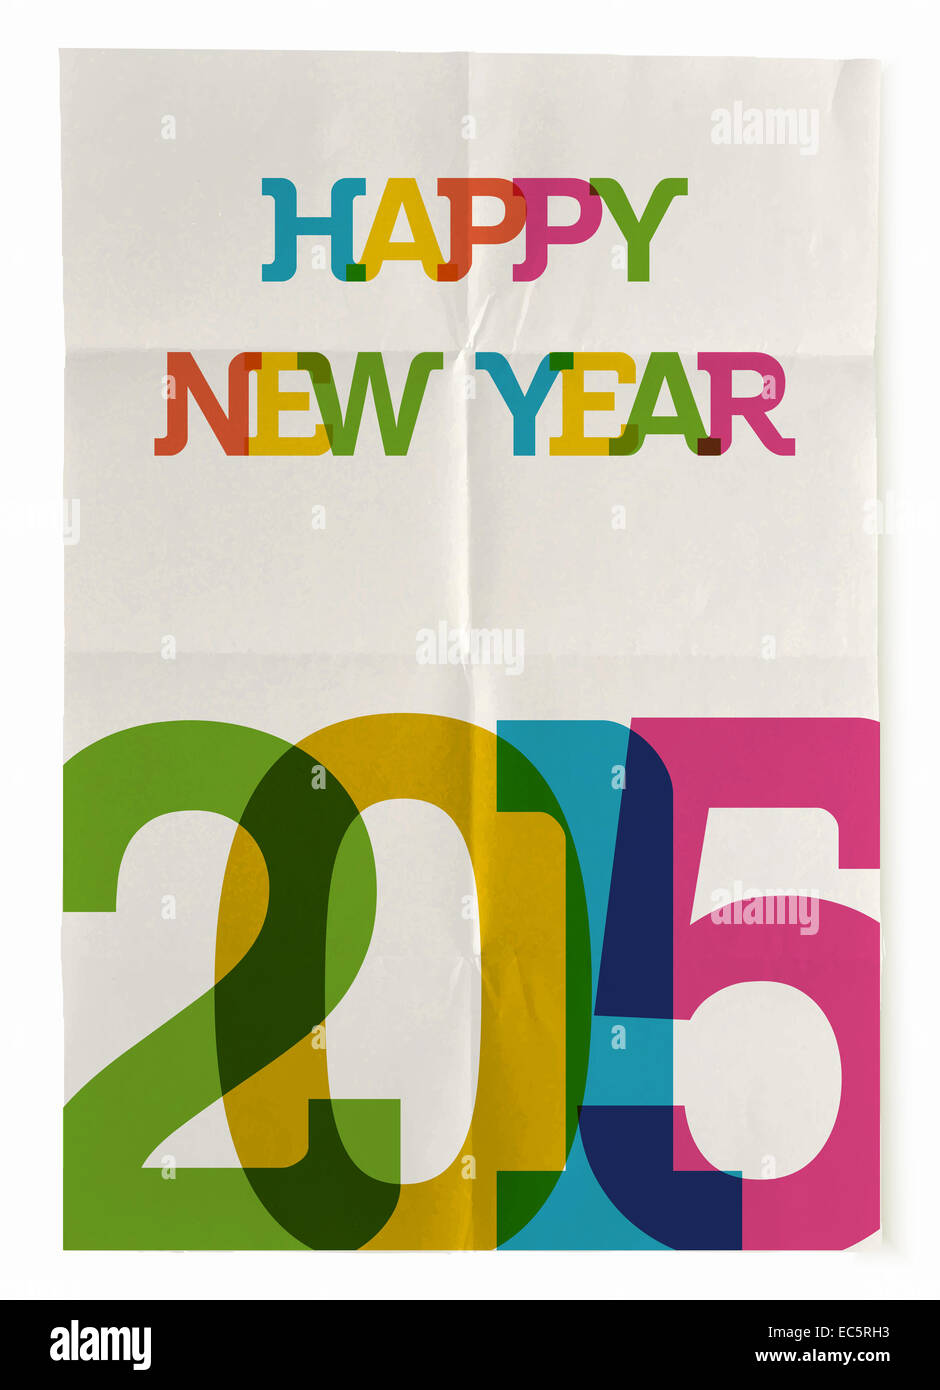 Trendy Poster Designs: Happy New Year 2015 Trendy Vintage Folded Poster Design